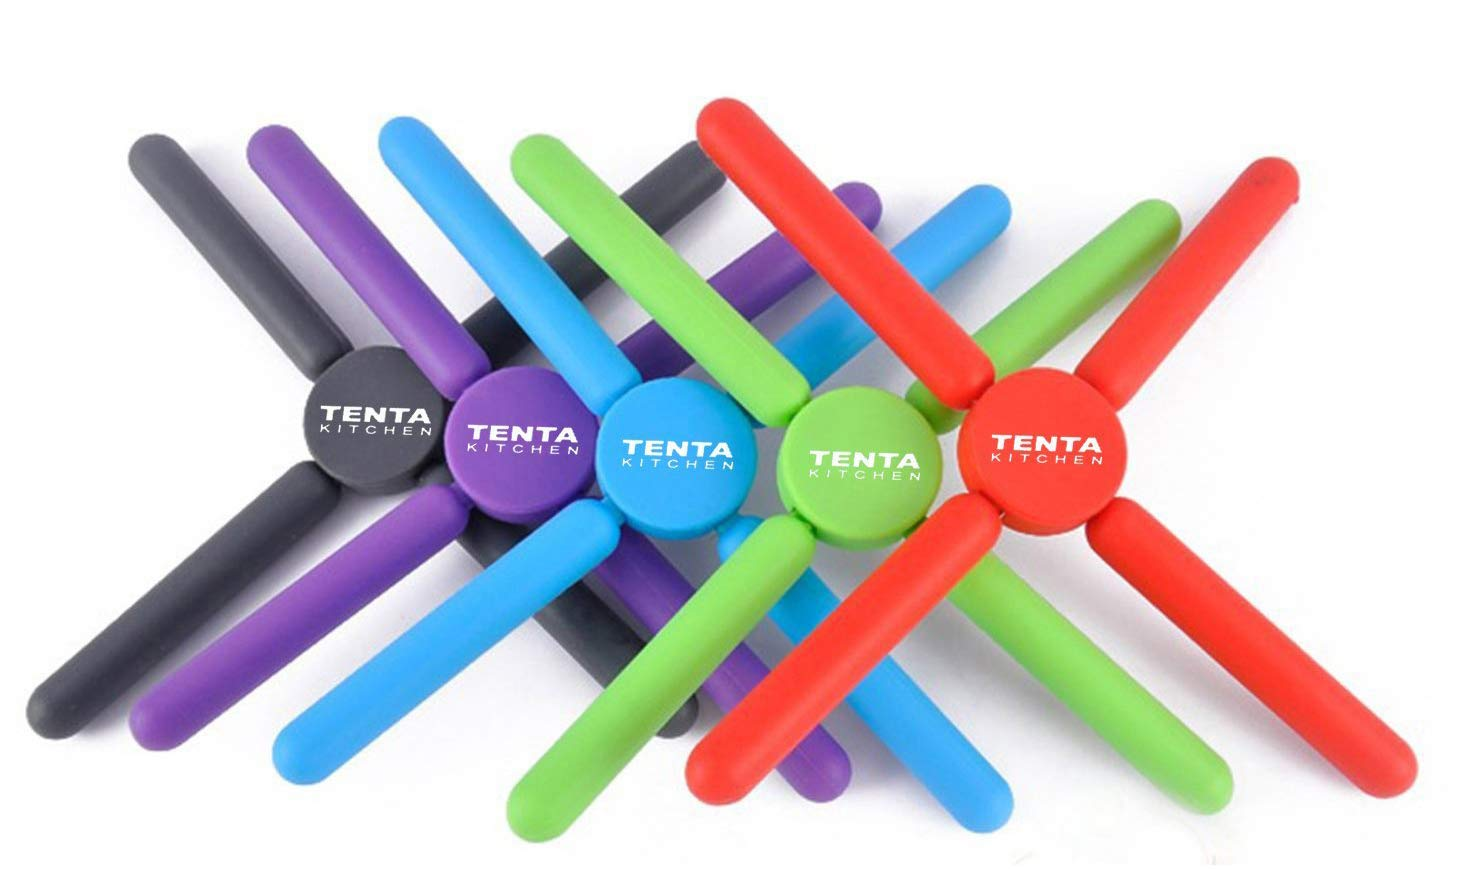 TENTA Kitchen Utility Foldable Silicone Trivets, Expandable/Collapsible(Pack of 5)